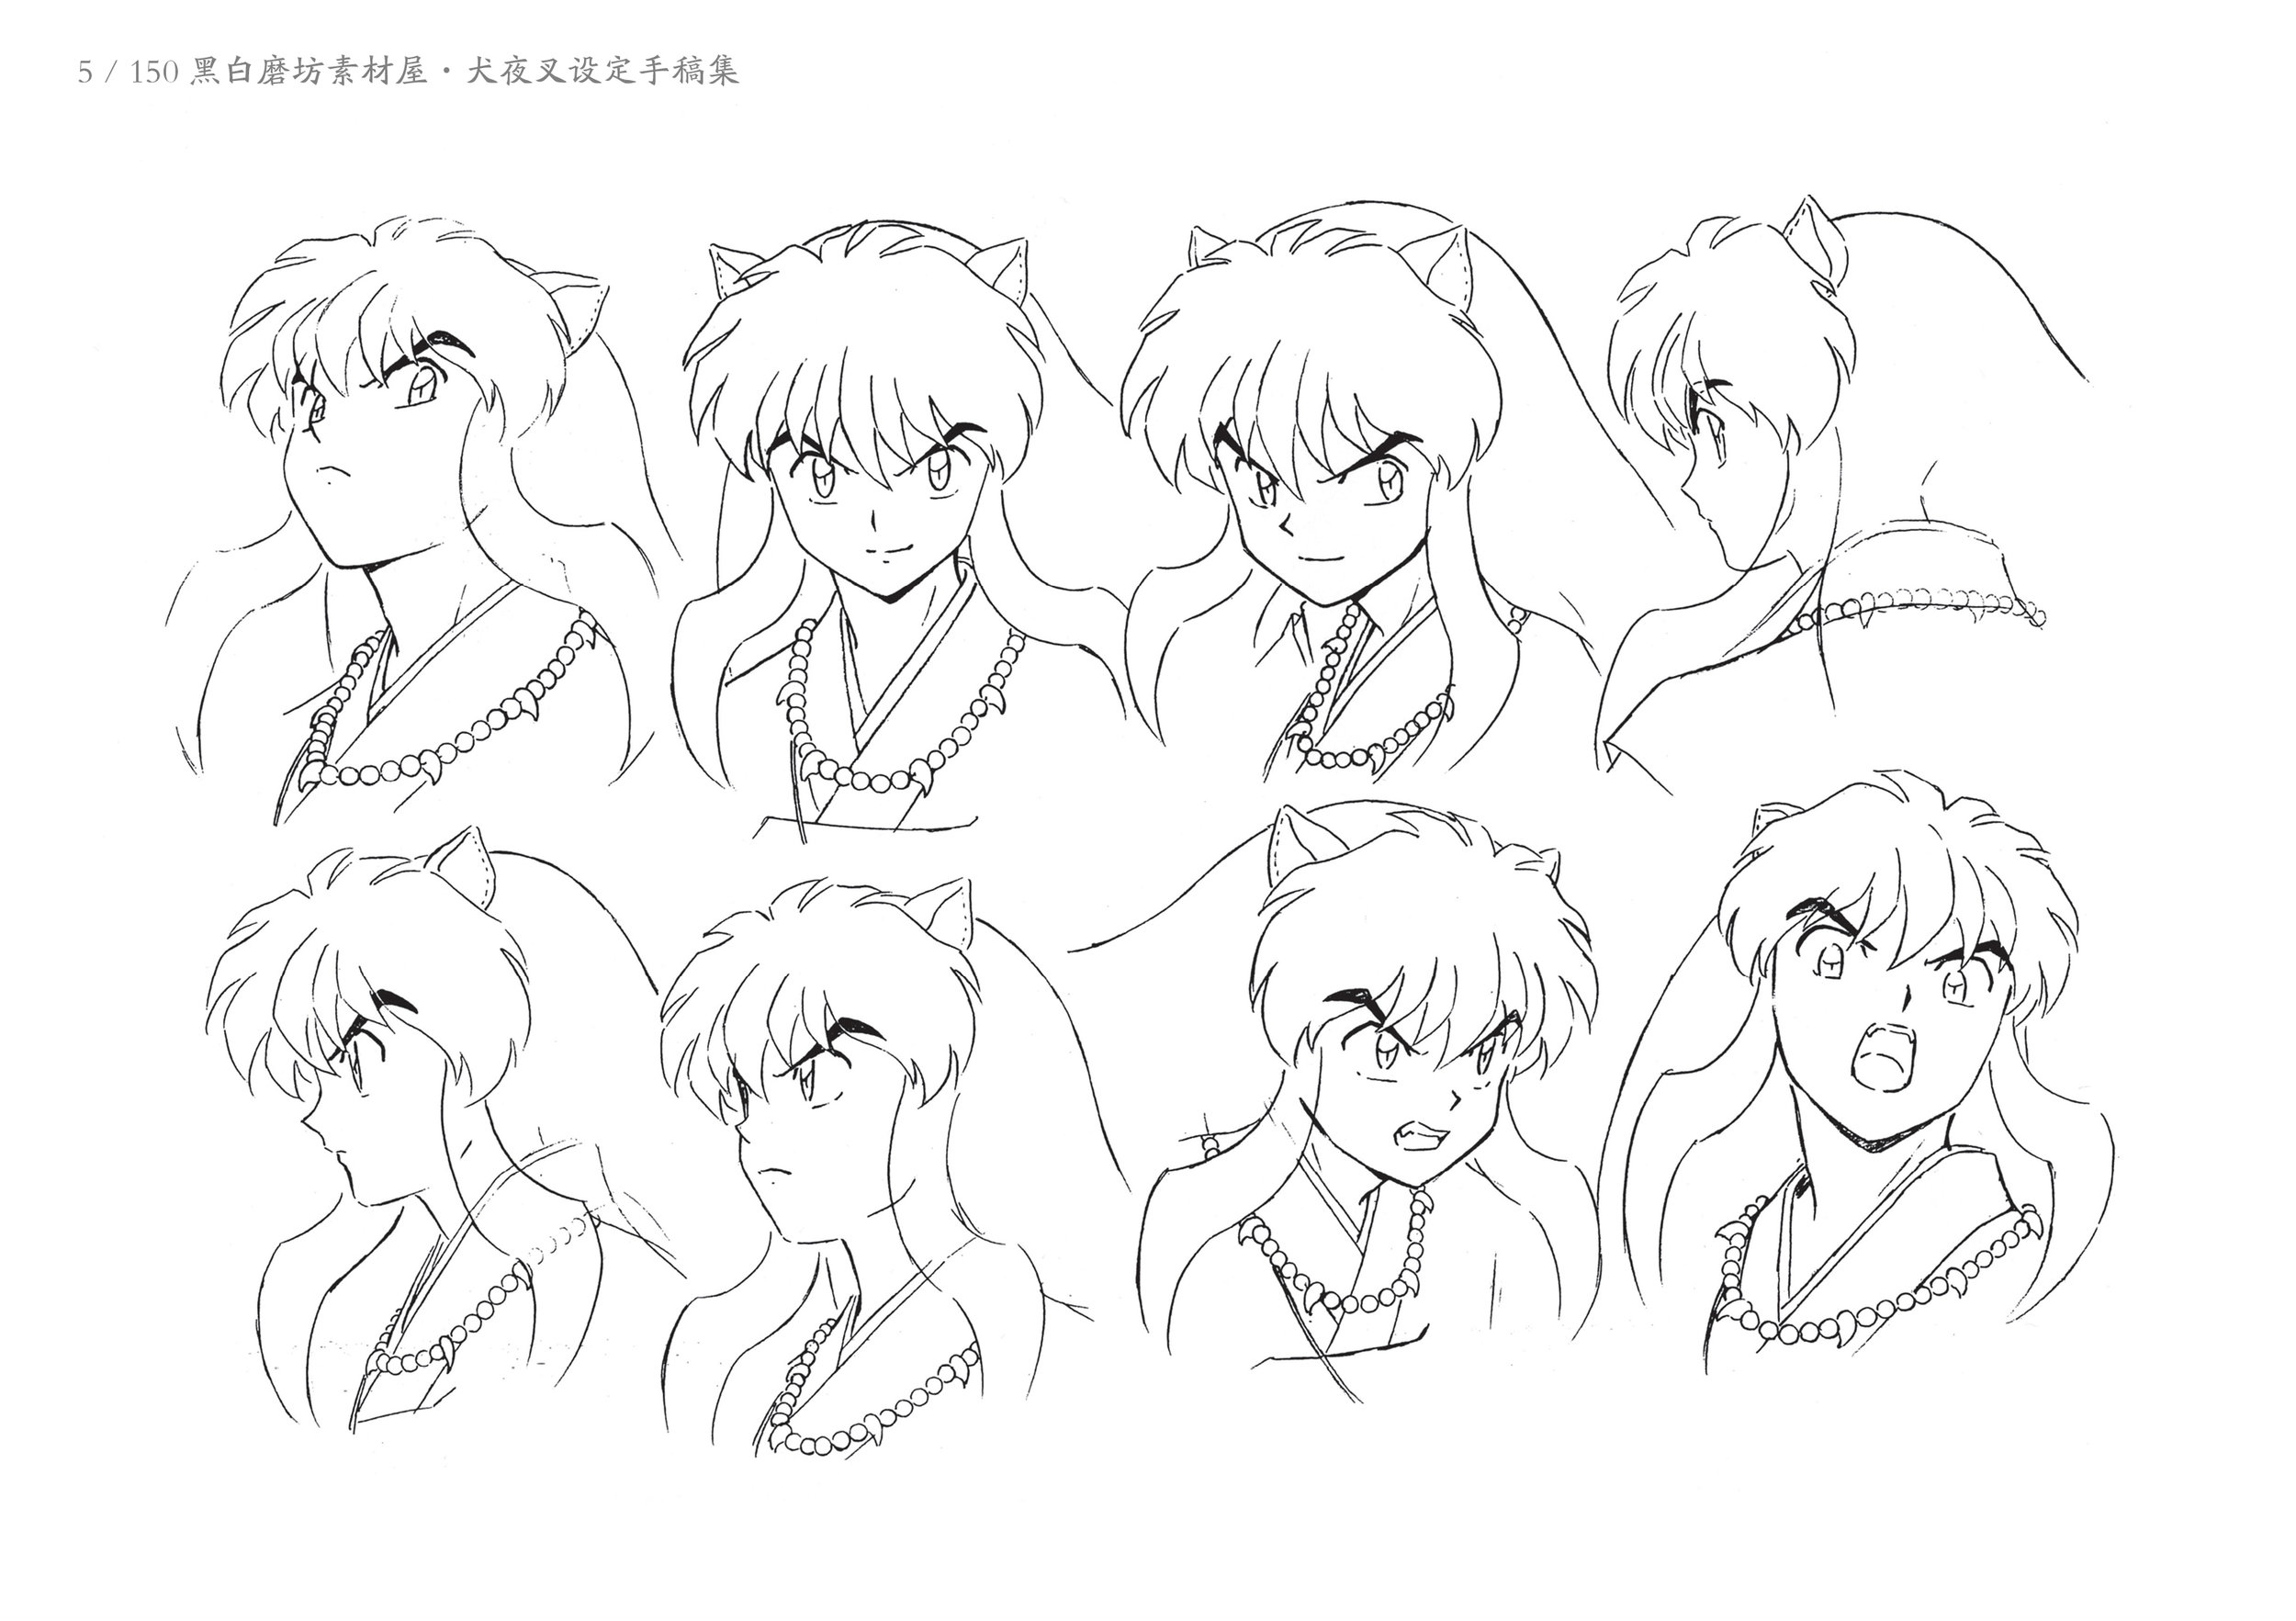 Art of the Inuyasha A - 5.jpg